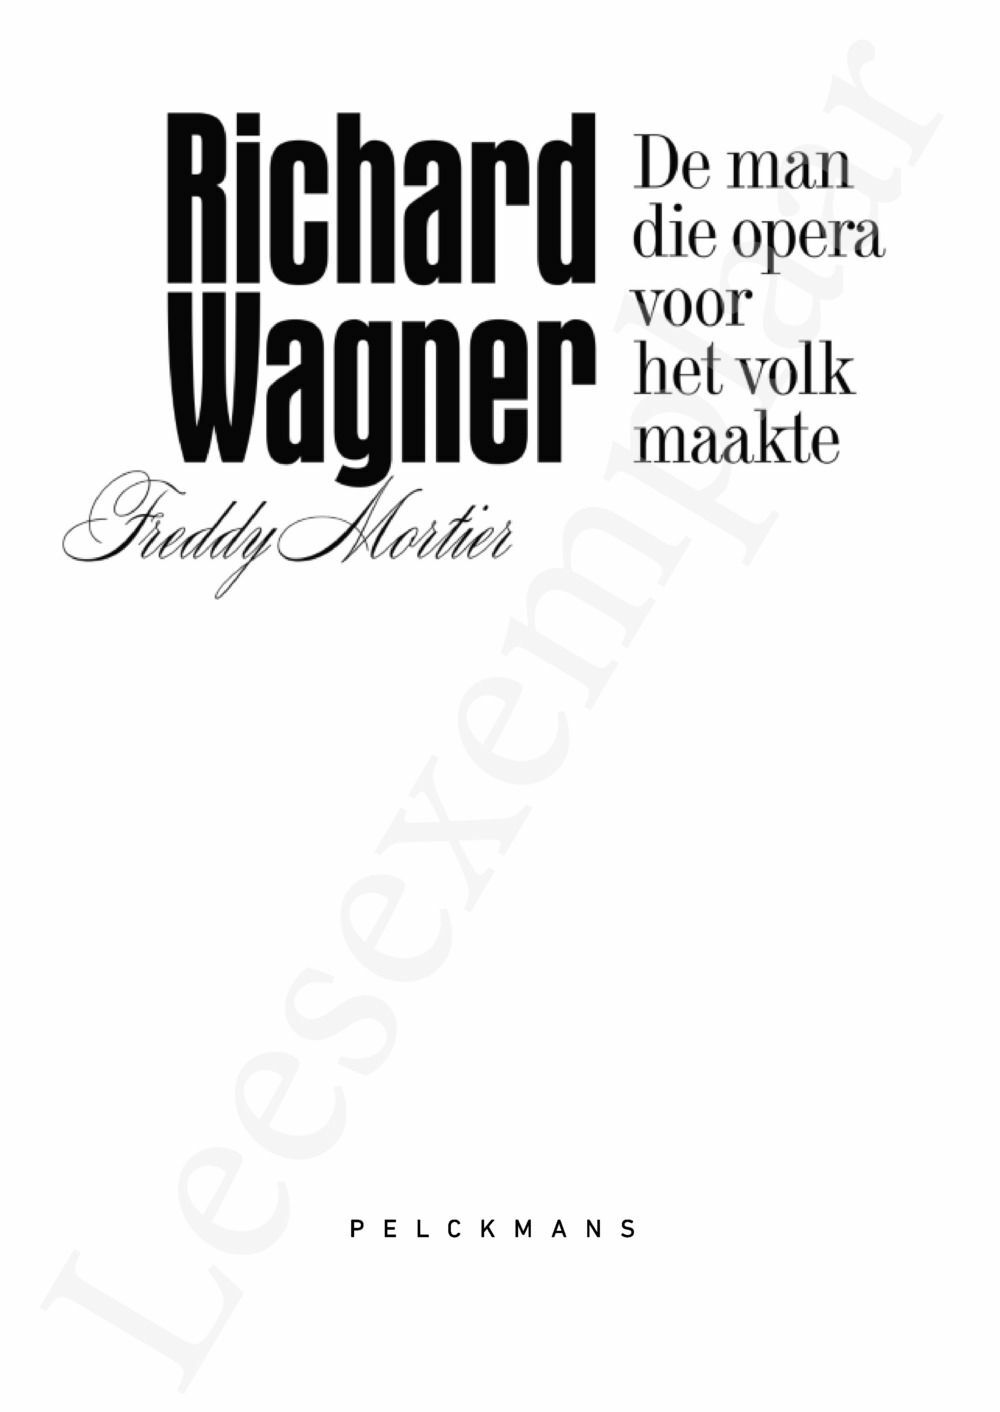 Preview: Richard Wagner